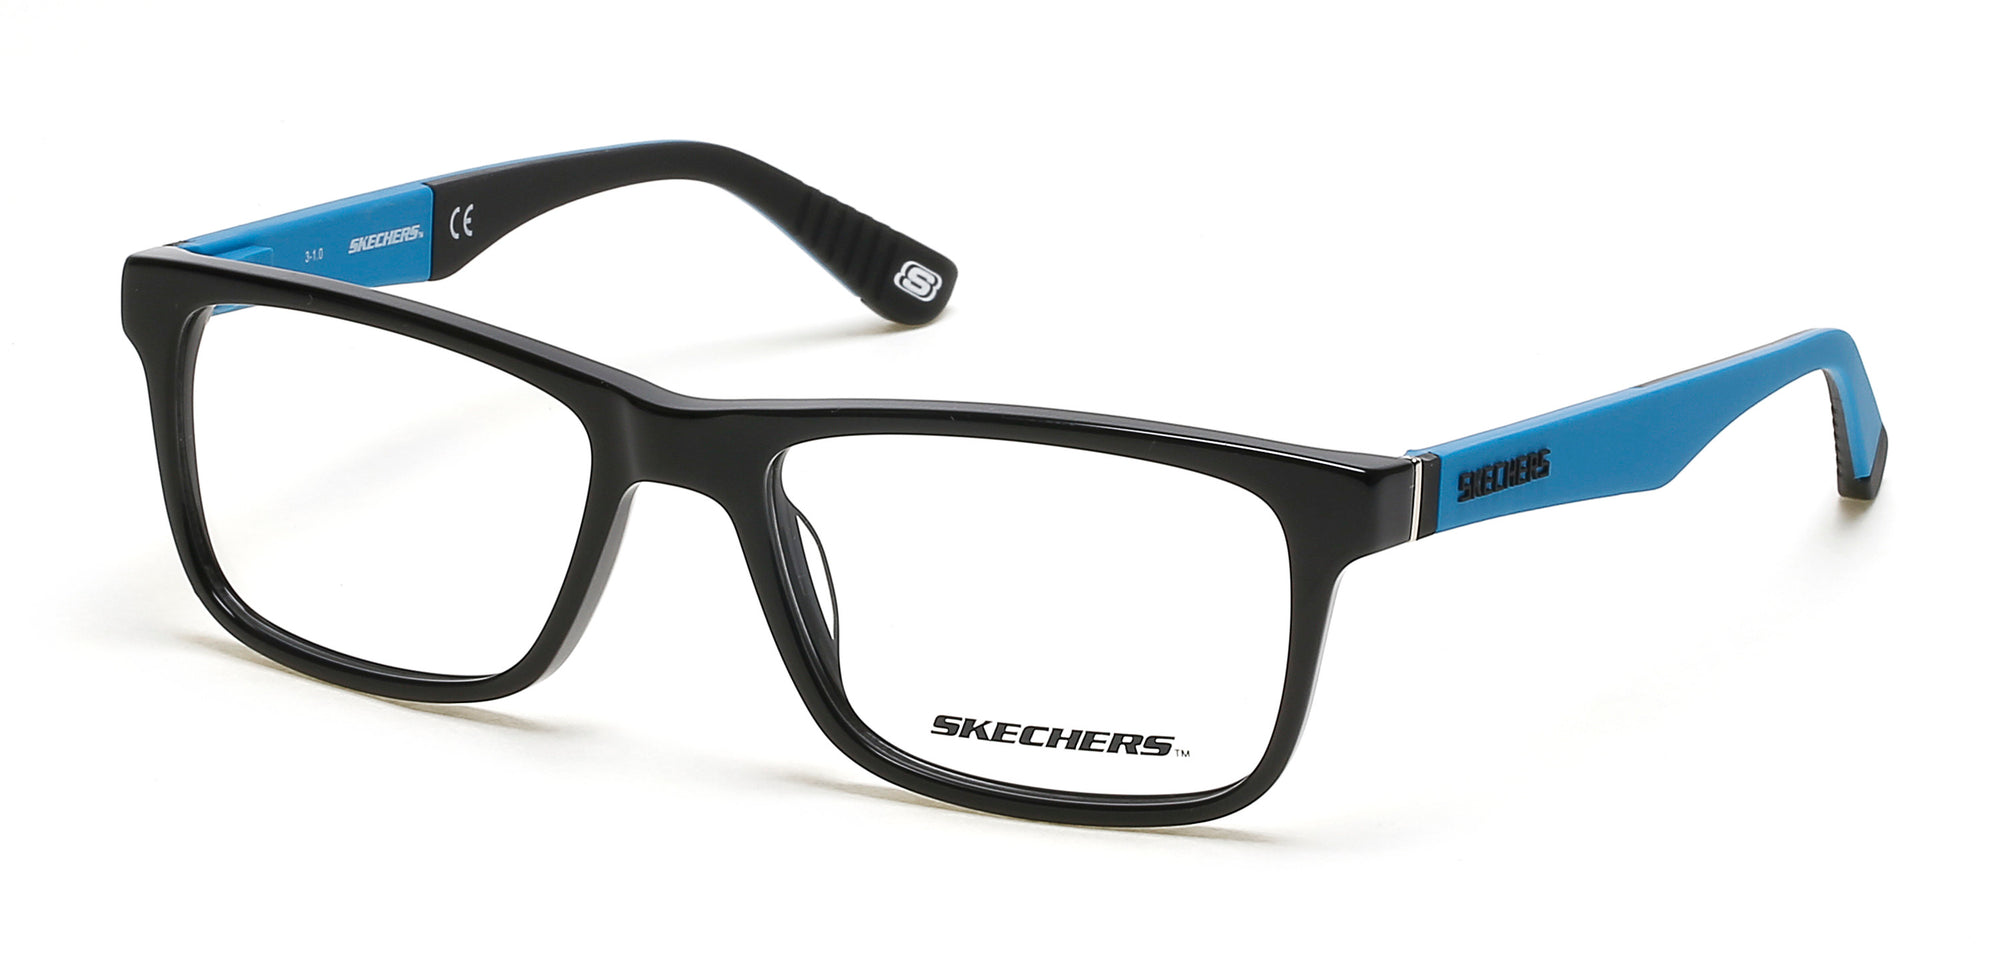 Skechers SE1158 Geometric Eyeglasses 001-001 - Shiny Black